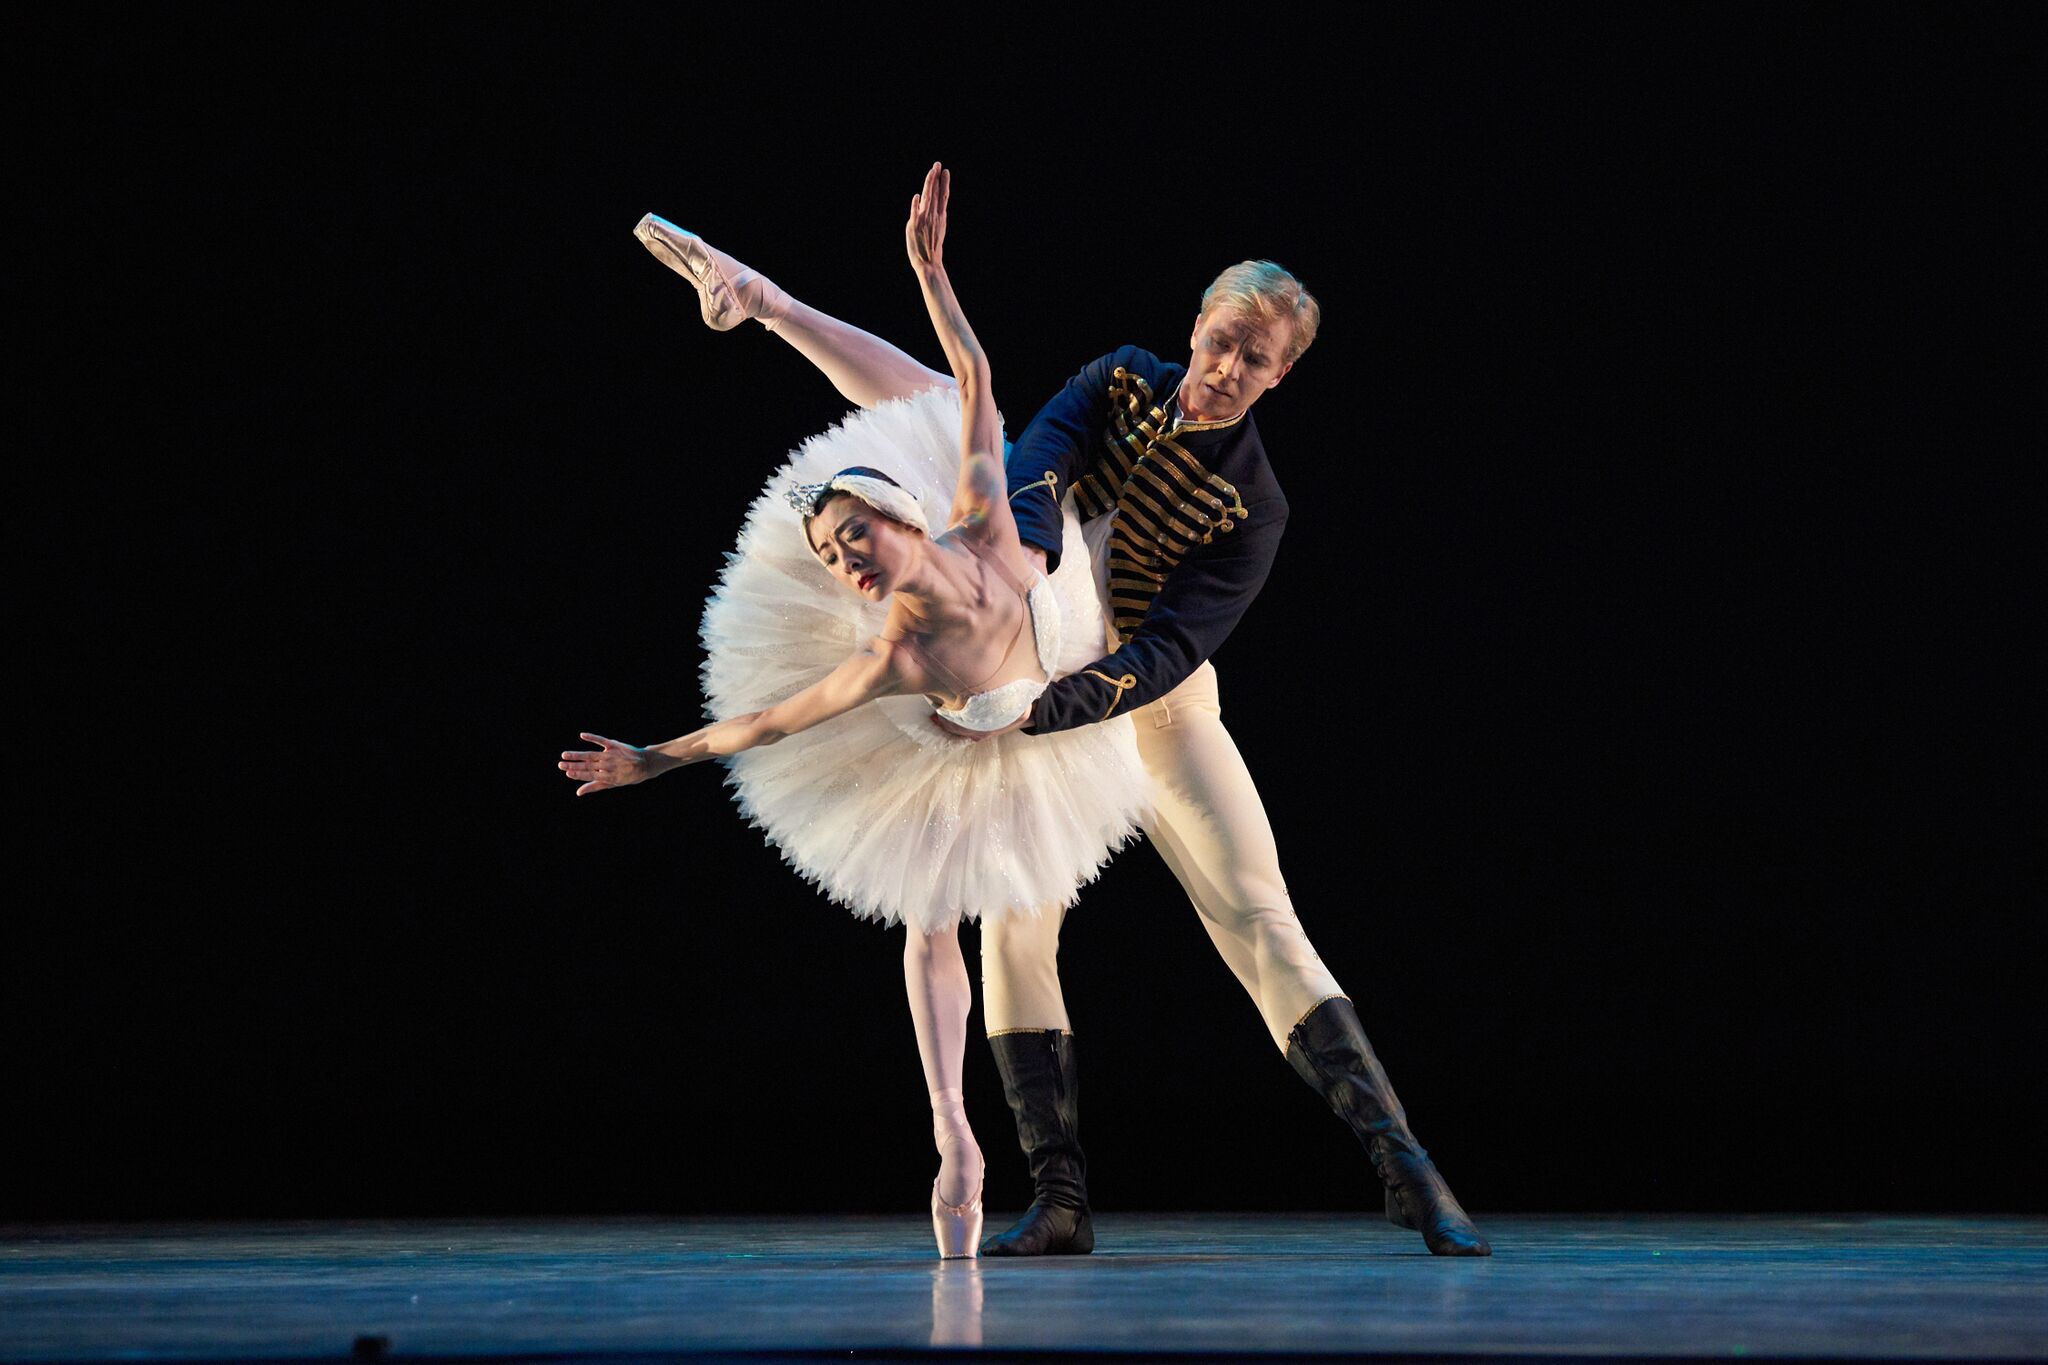 Yuan Yuan Tan and Tiit Helimets in the pas de deux from Act II of Tomasson's Swan Lake